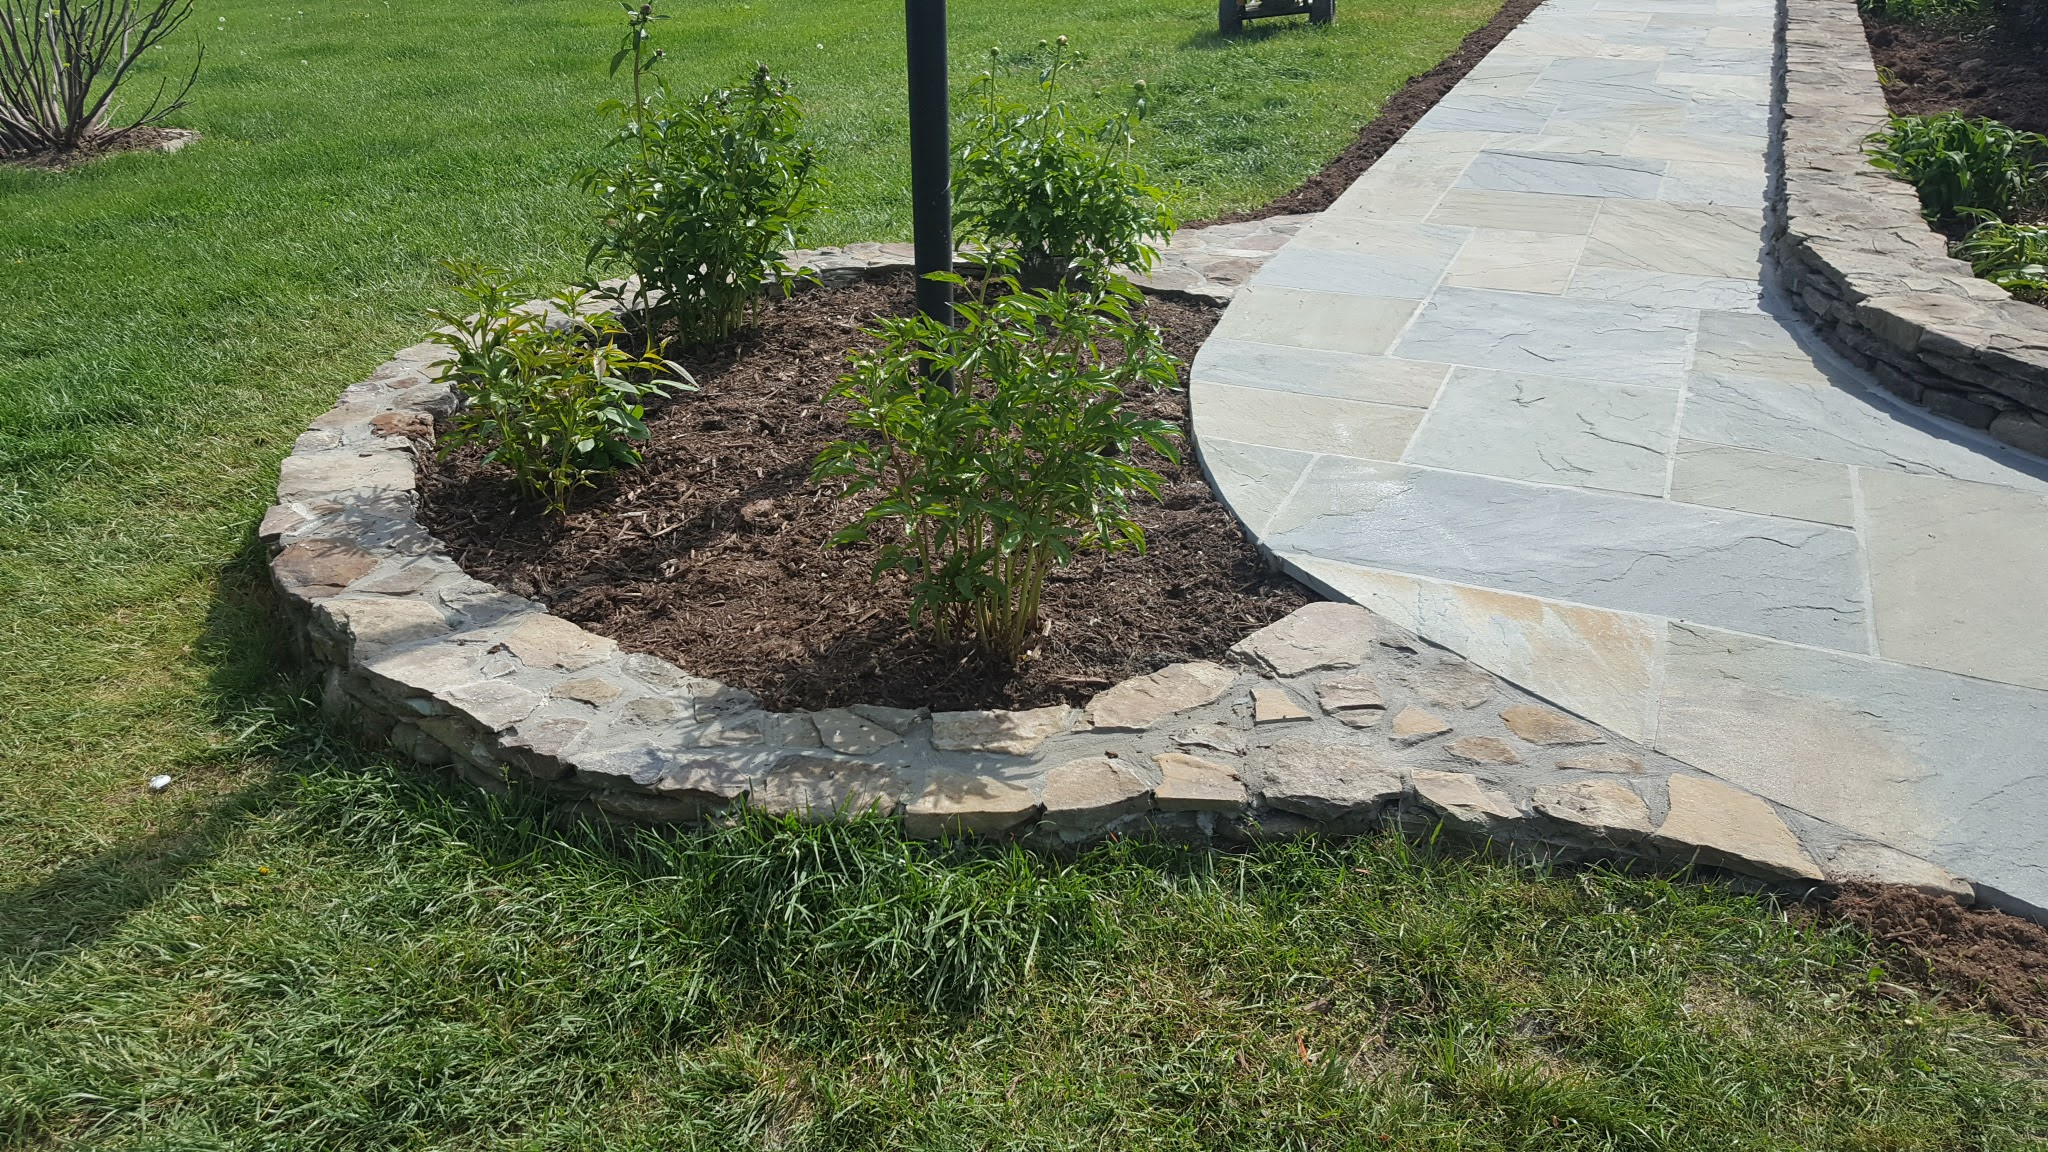 Fieldstone Garden Wall for a Lightpole.jpg